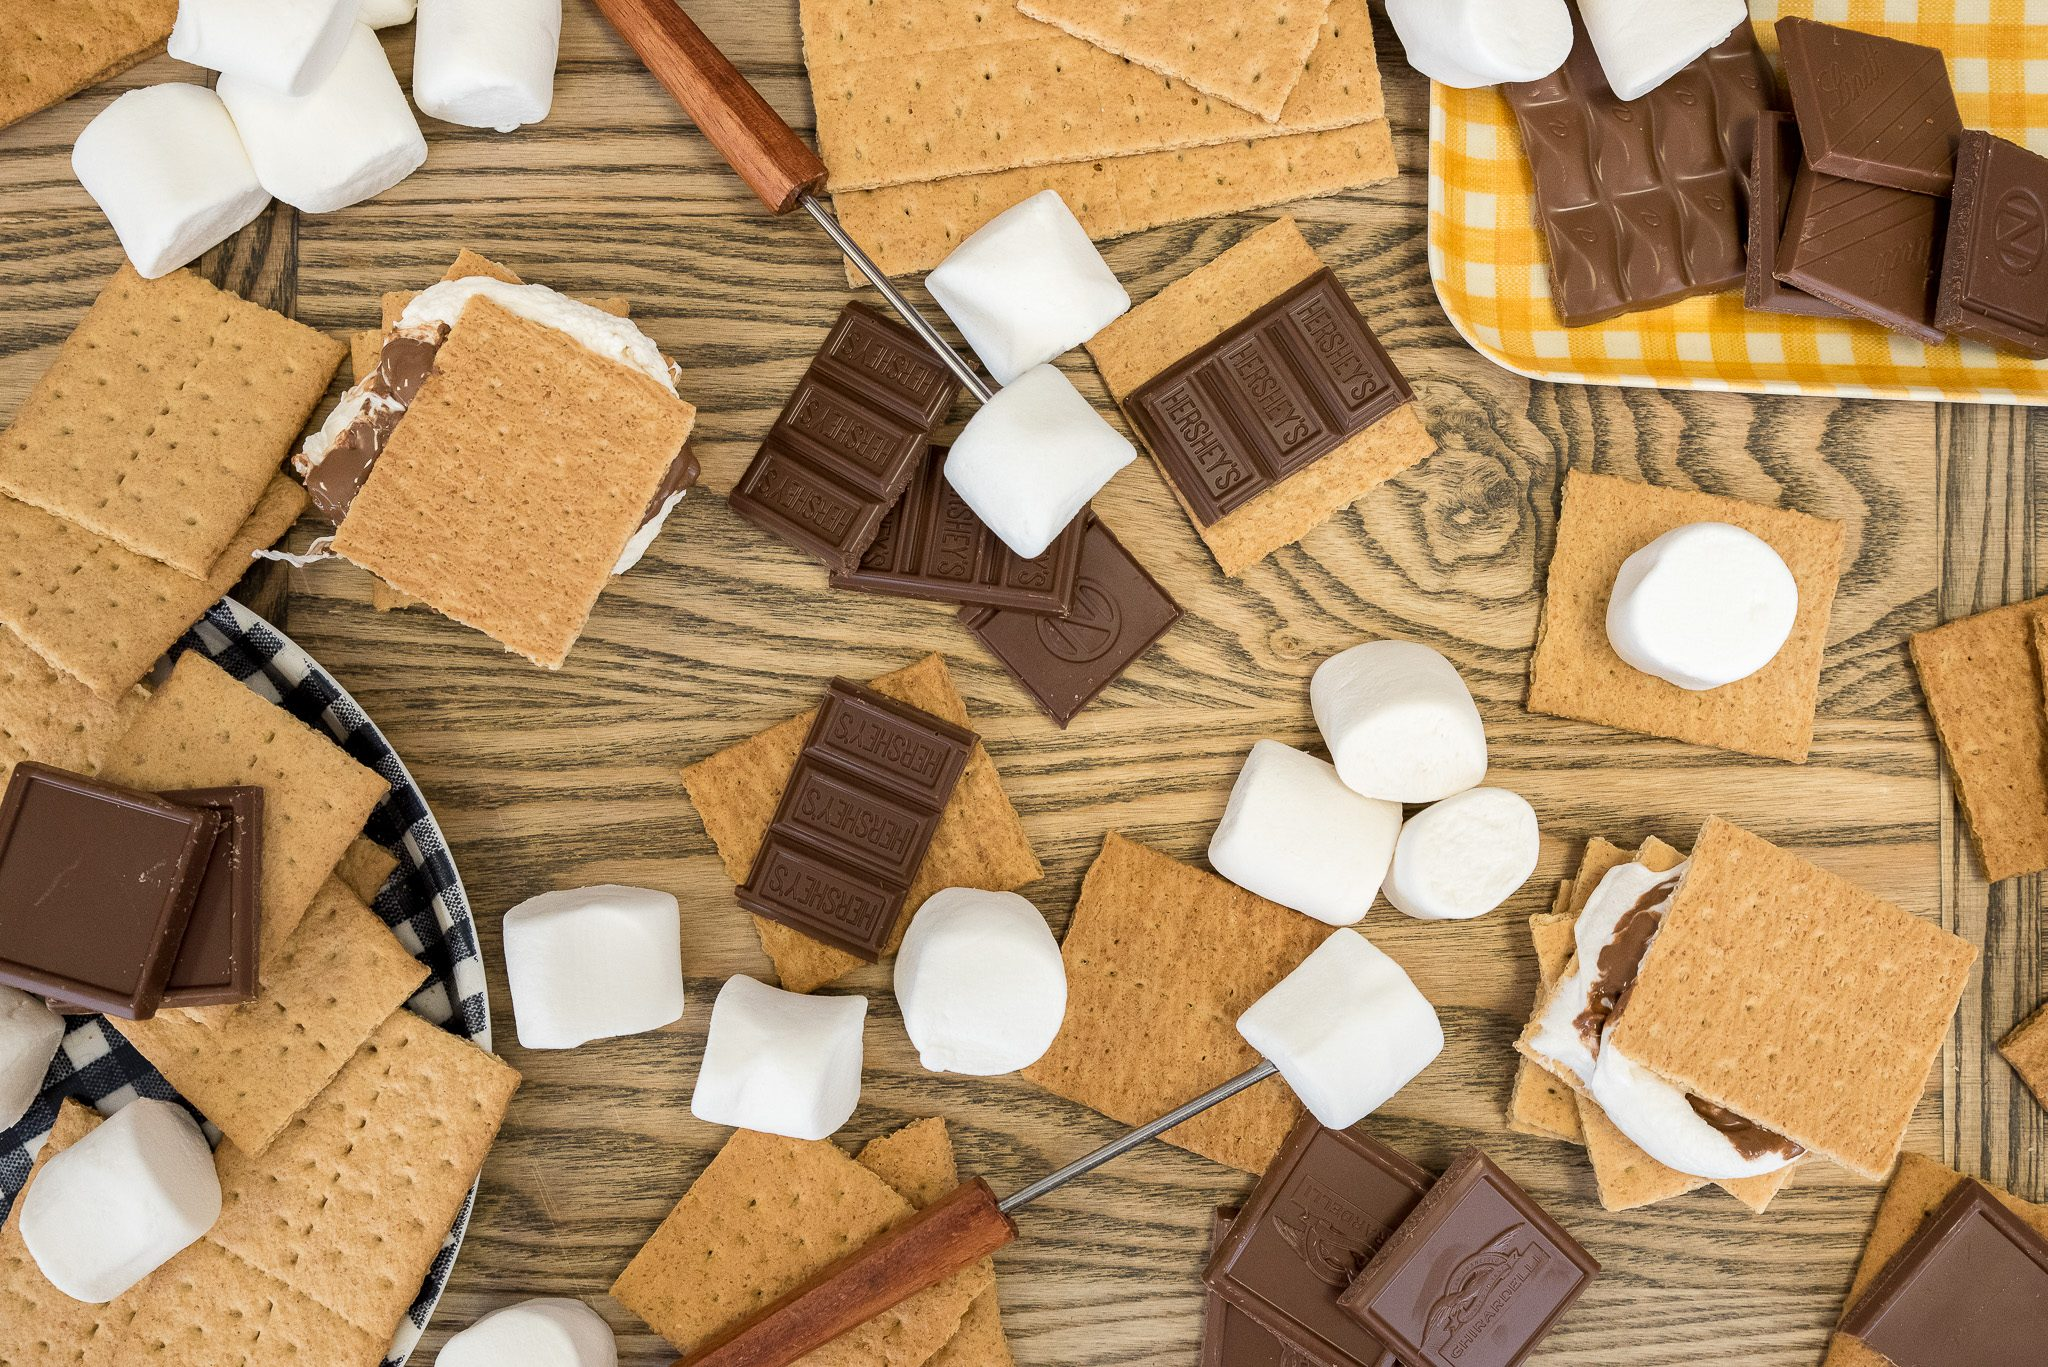 S'mores ingredients, graham crackers, marshmallow, milk chocolate bar